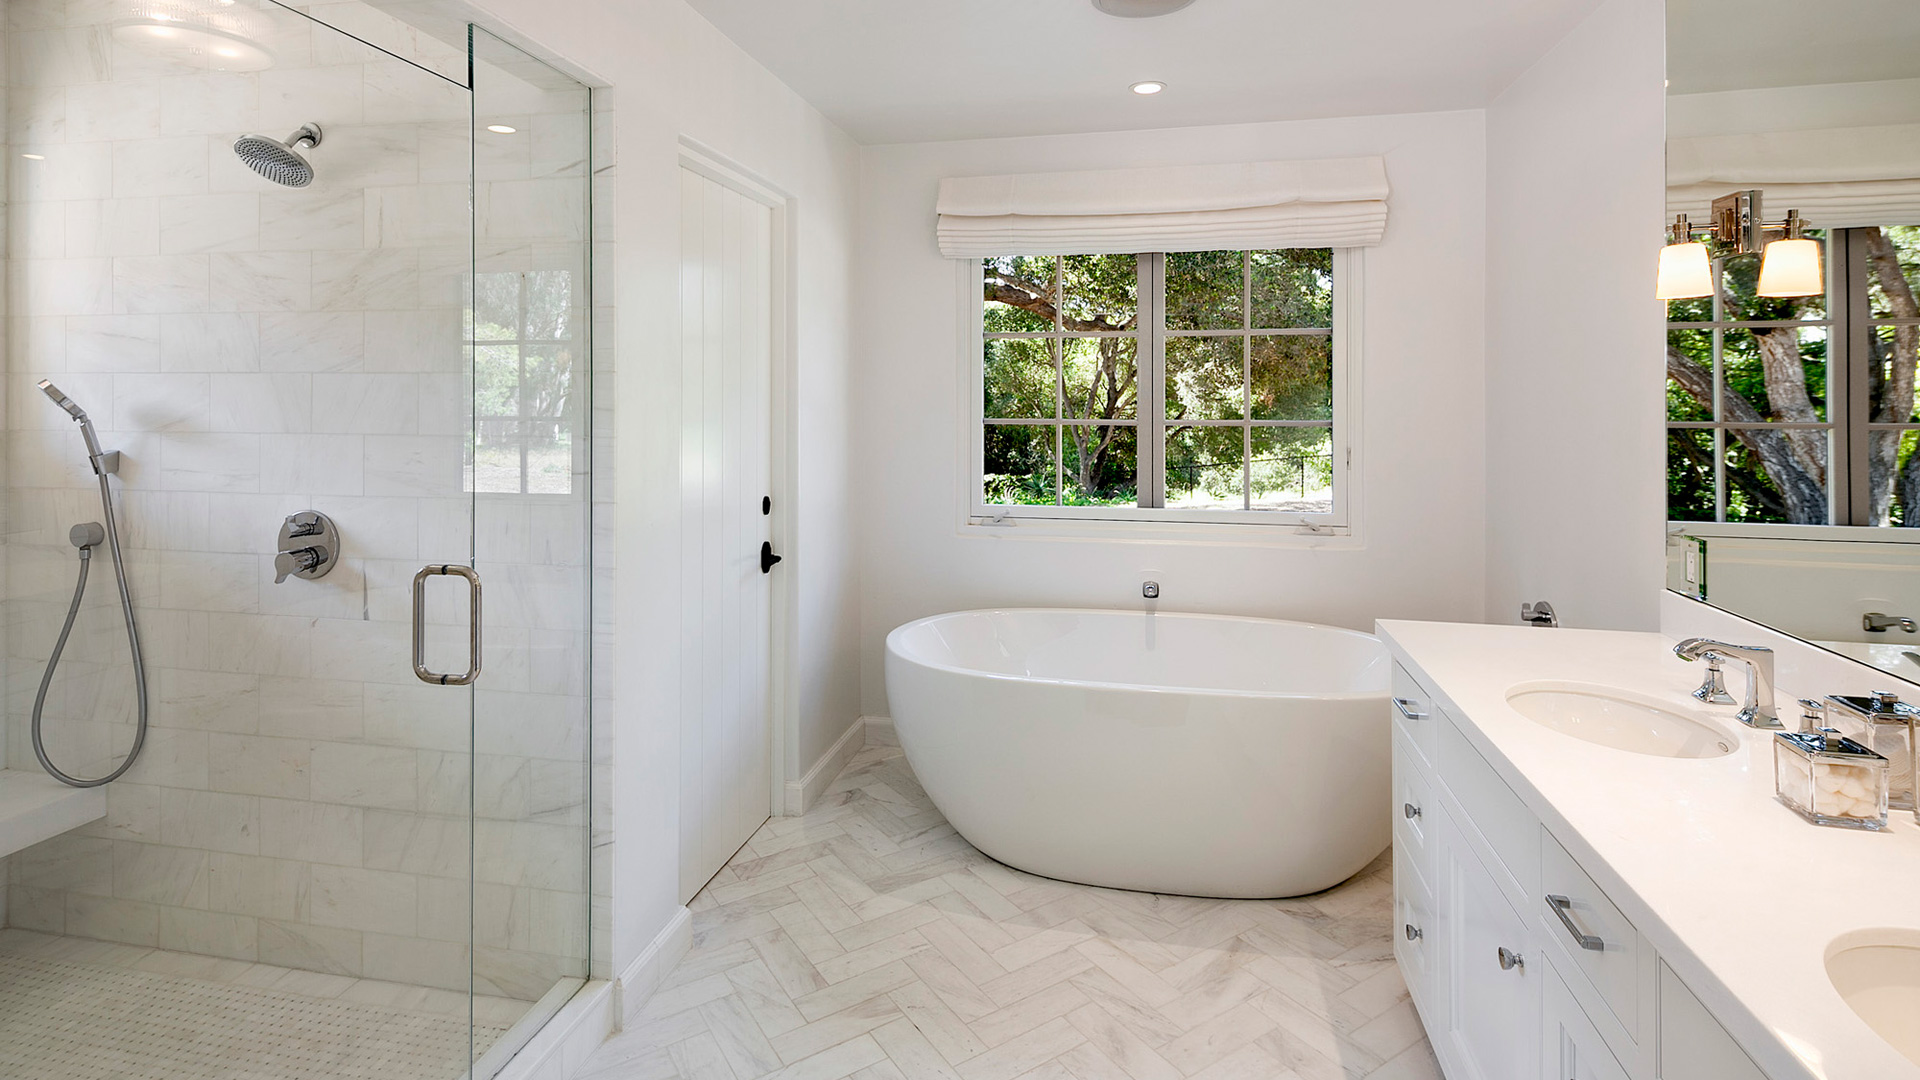 Bathroom Tub and Countertop Santa Barbara Ventura